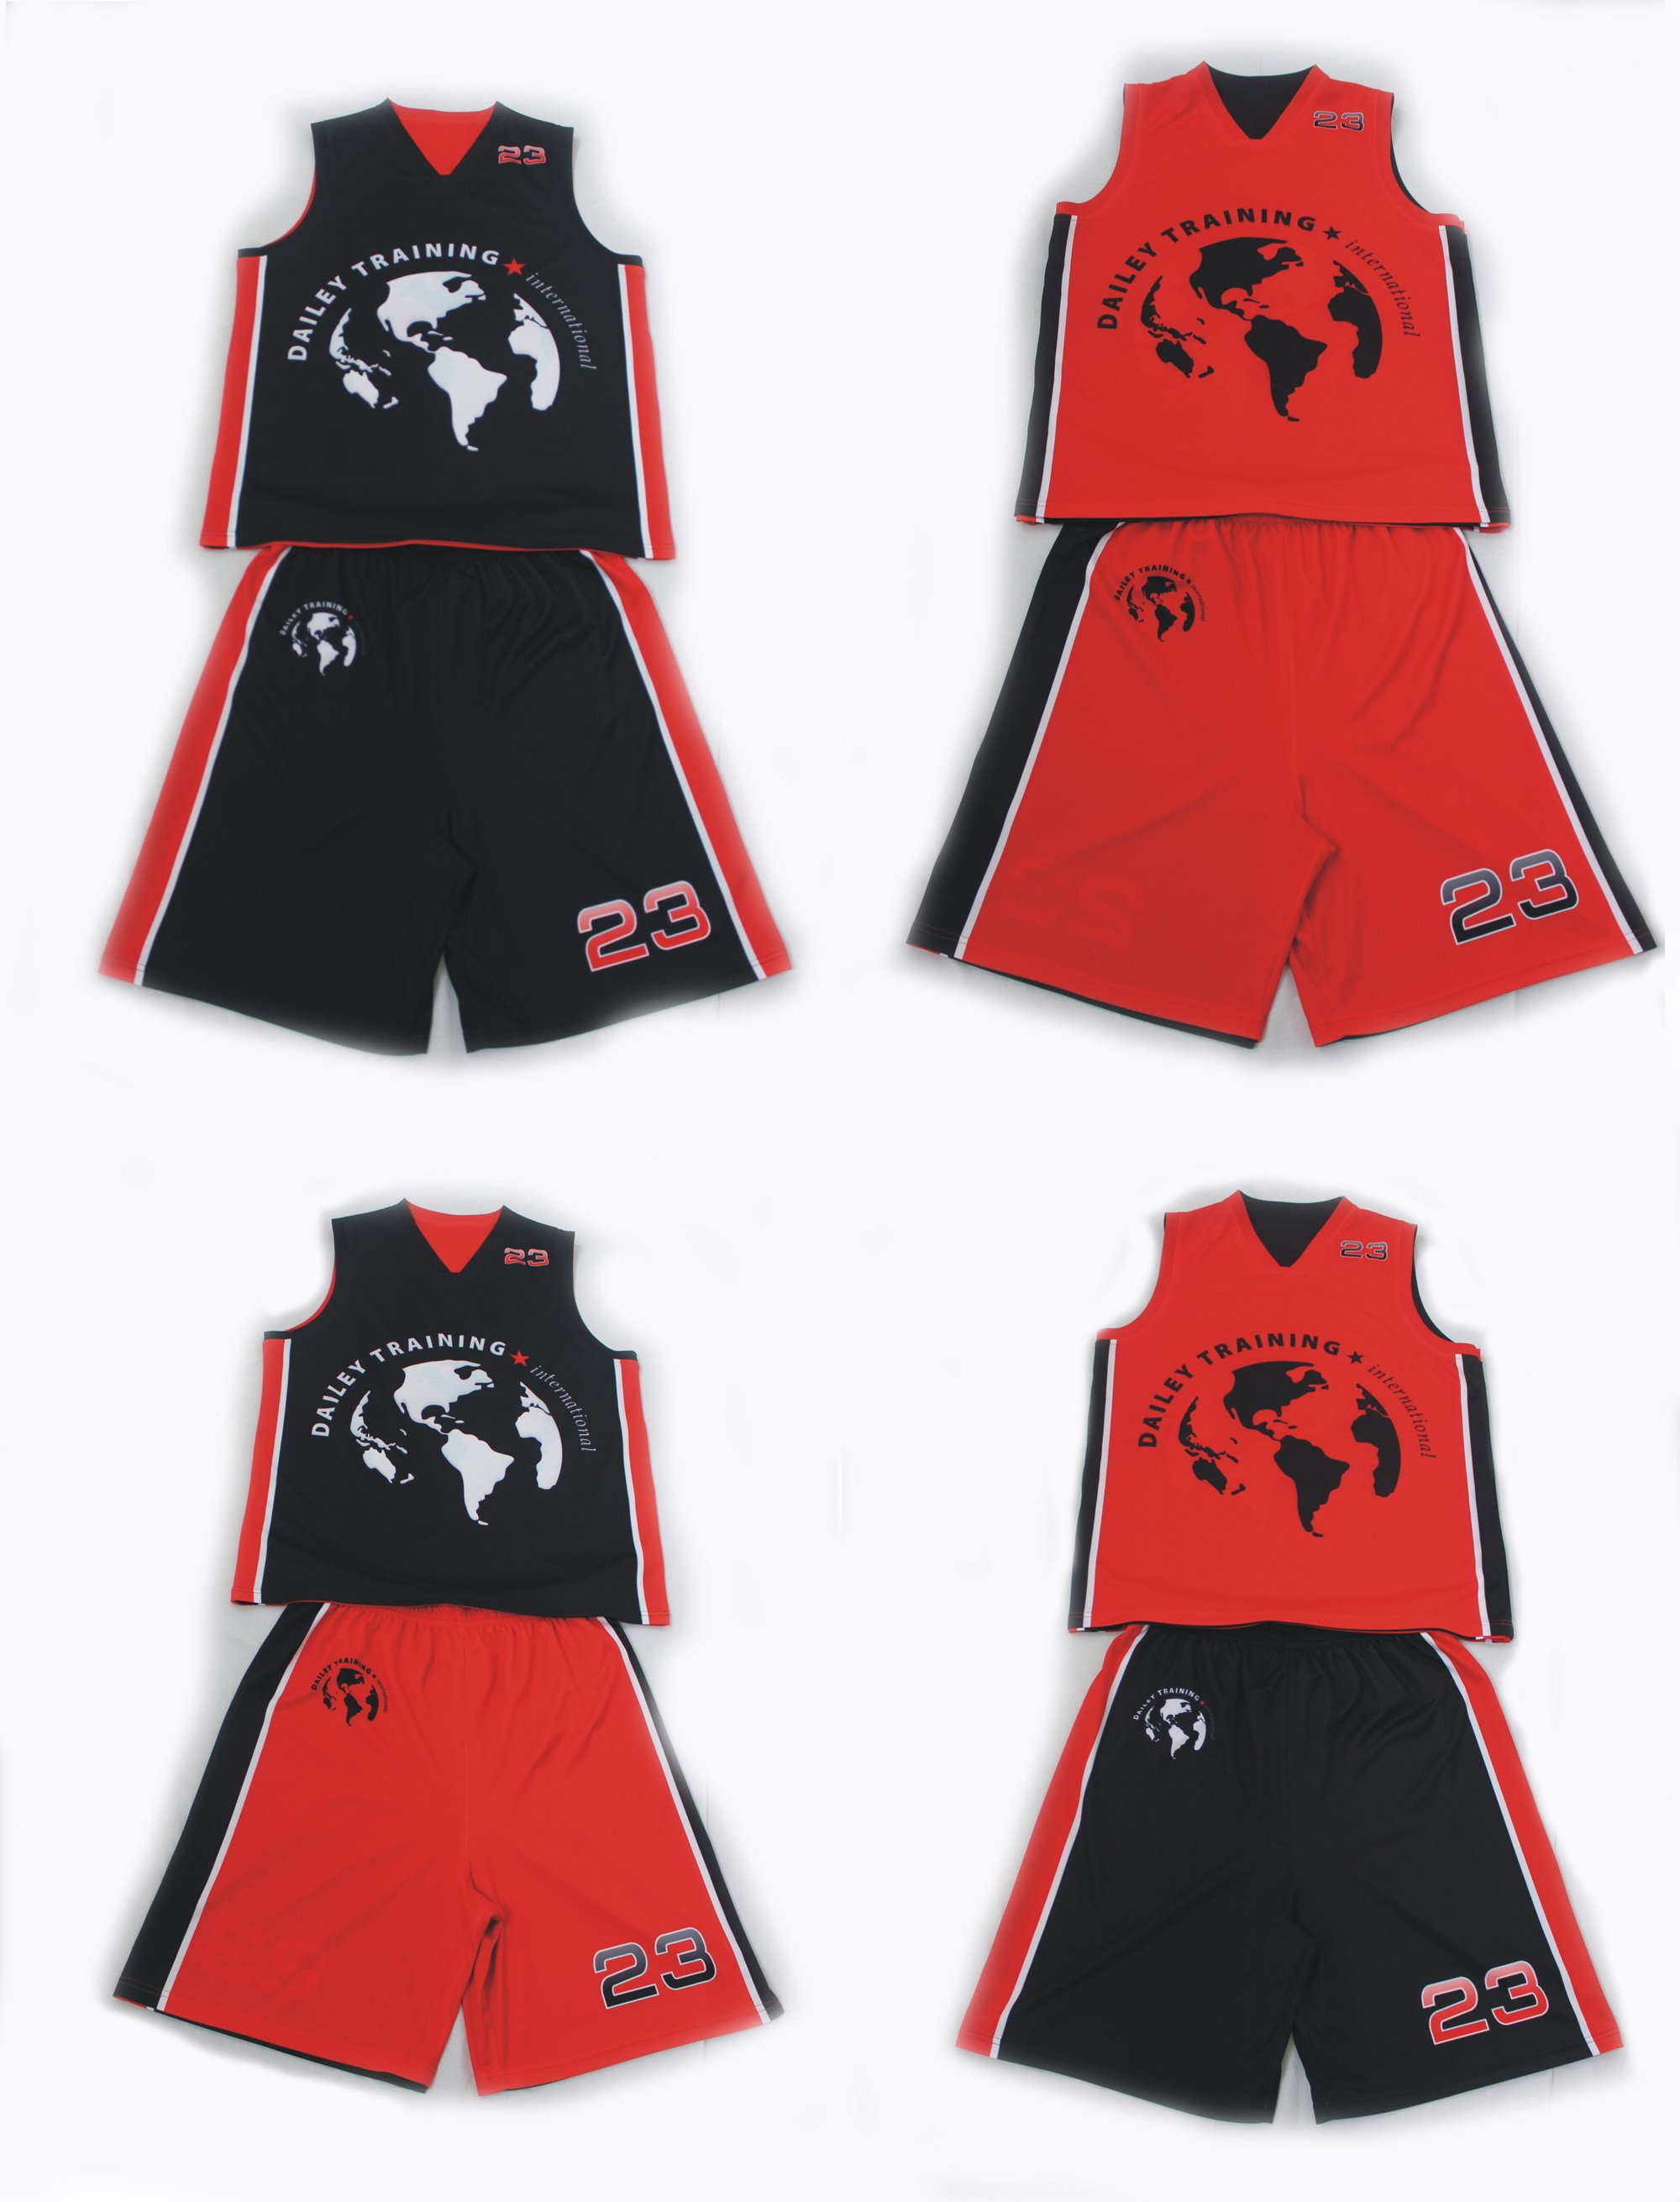 f17b1fdffefa ... Uniform Custom Reversible Basketball Jerseys Uniforms.   